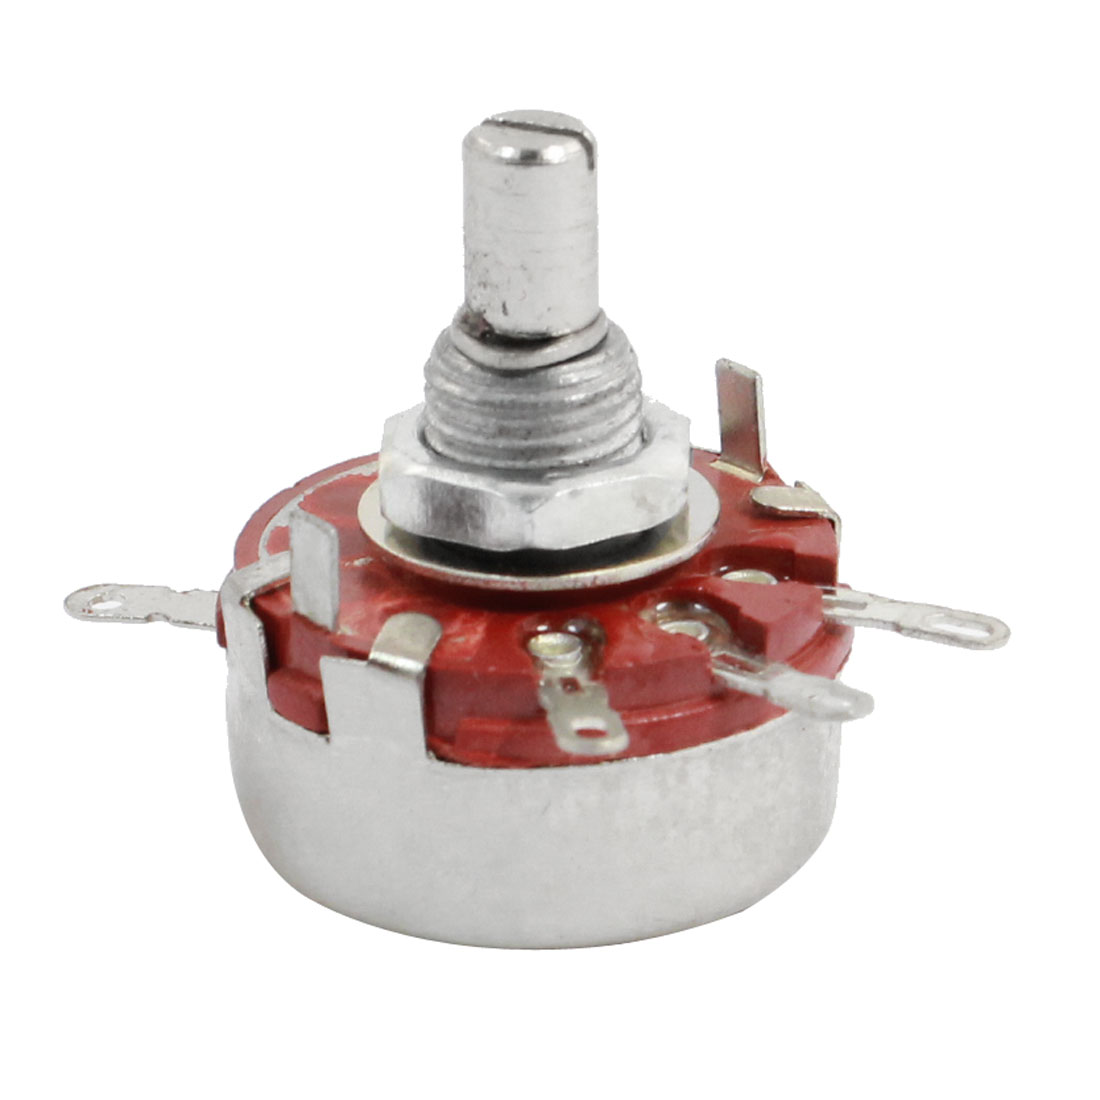 10K ohm 2Watt Single Turn Carbon Composition Rotary Potentiometer WTH118